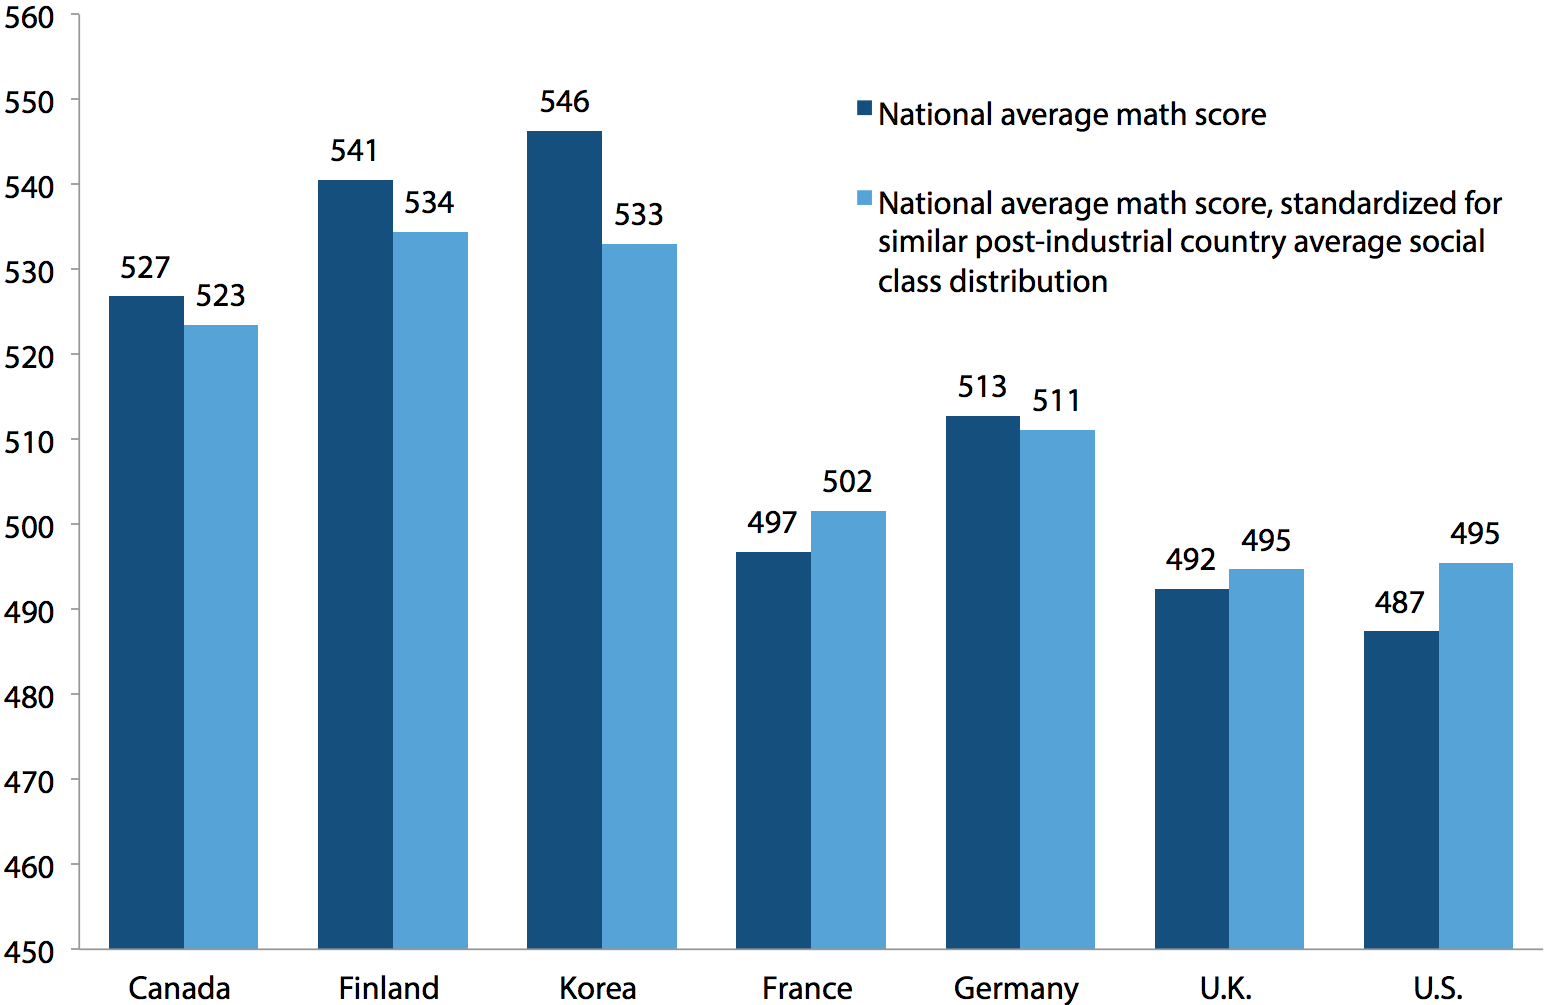 Average national math scores, actual and re-weighted using similar post-industrial country average social class group distribution, for U.S. and six comparison countries, PISA 2009